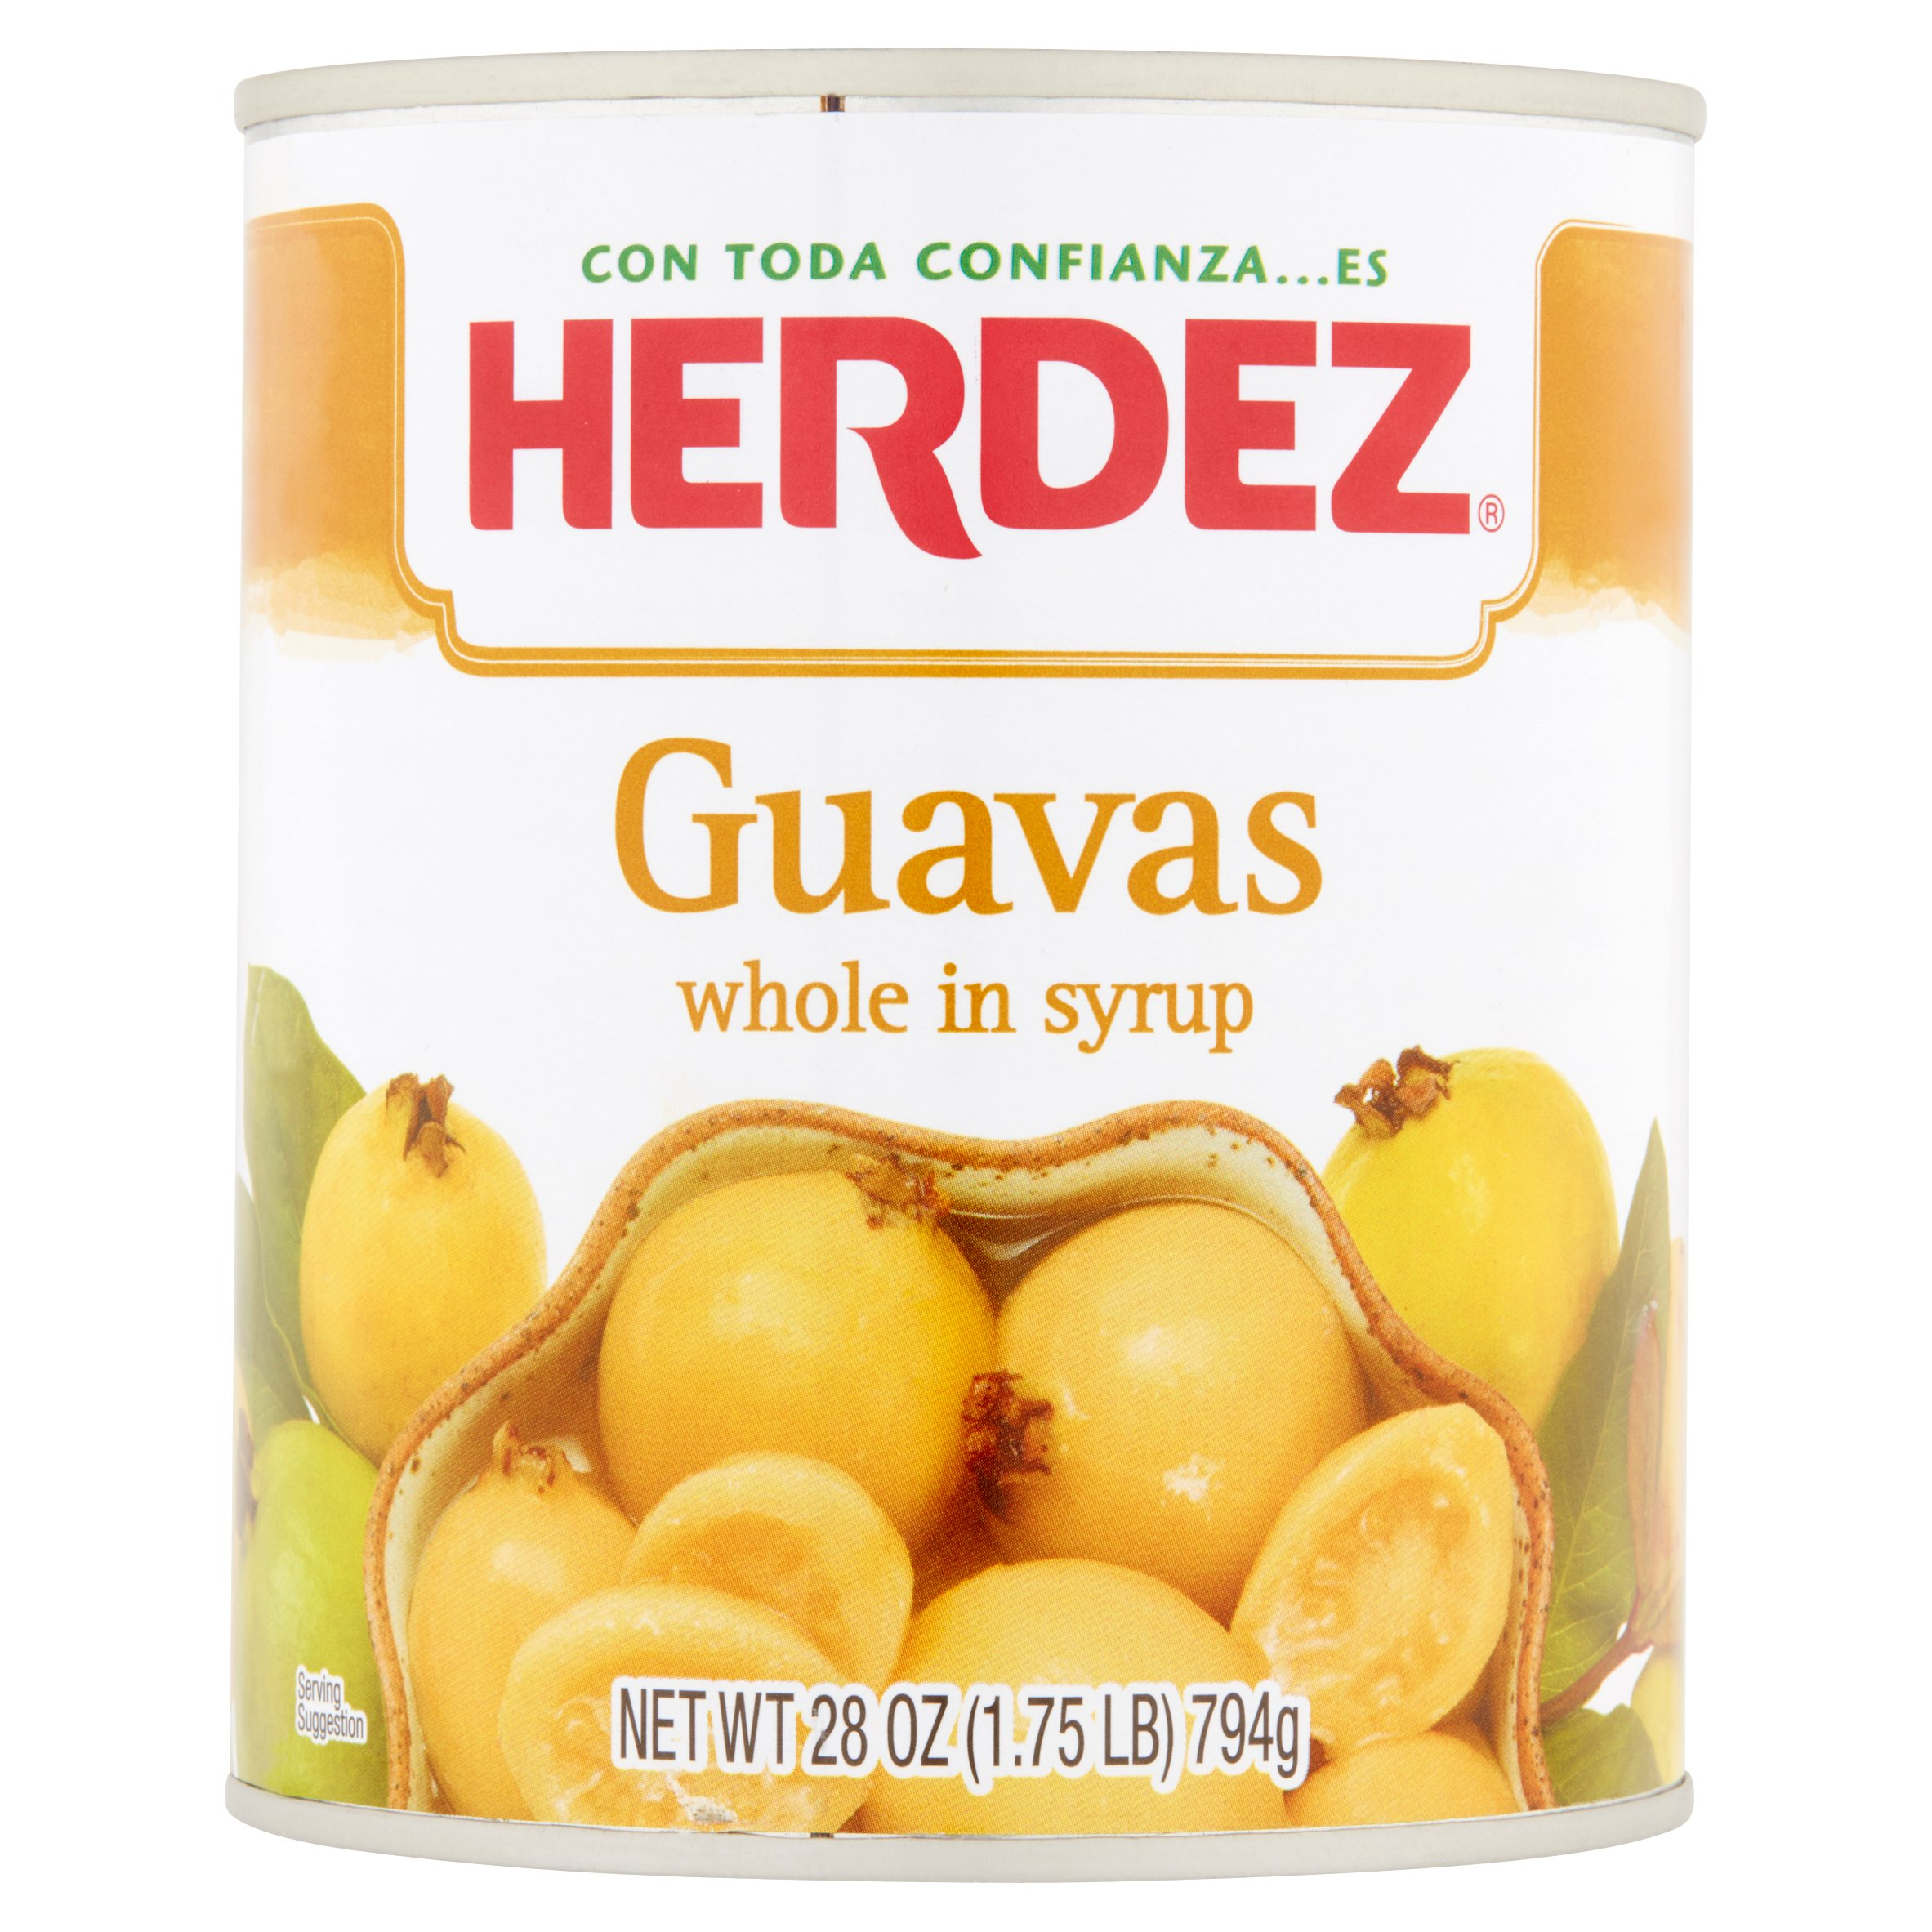 Herdez Guavas Whole in Syrup, 28 oz